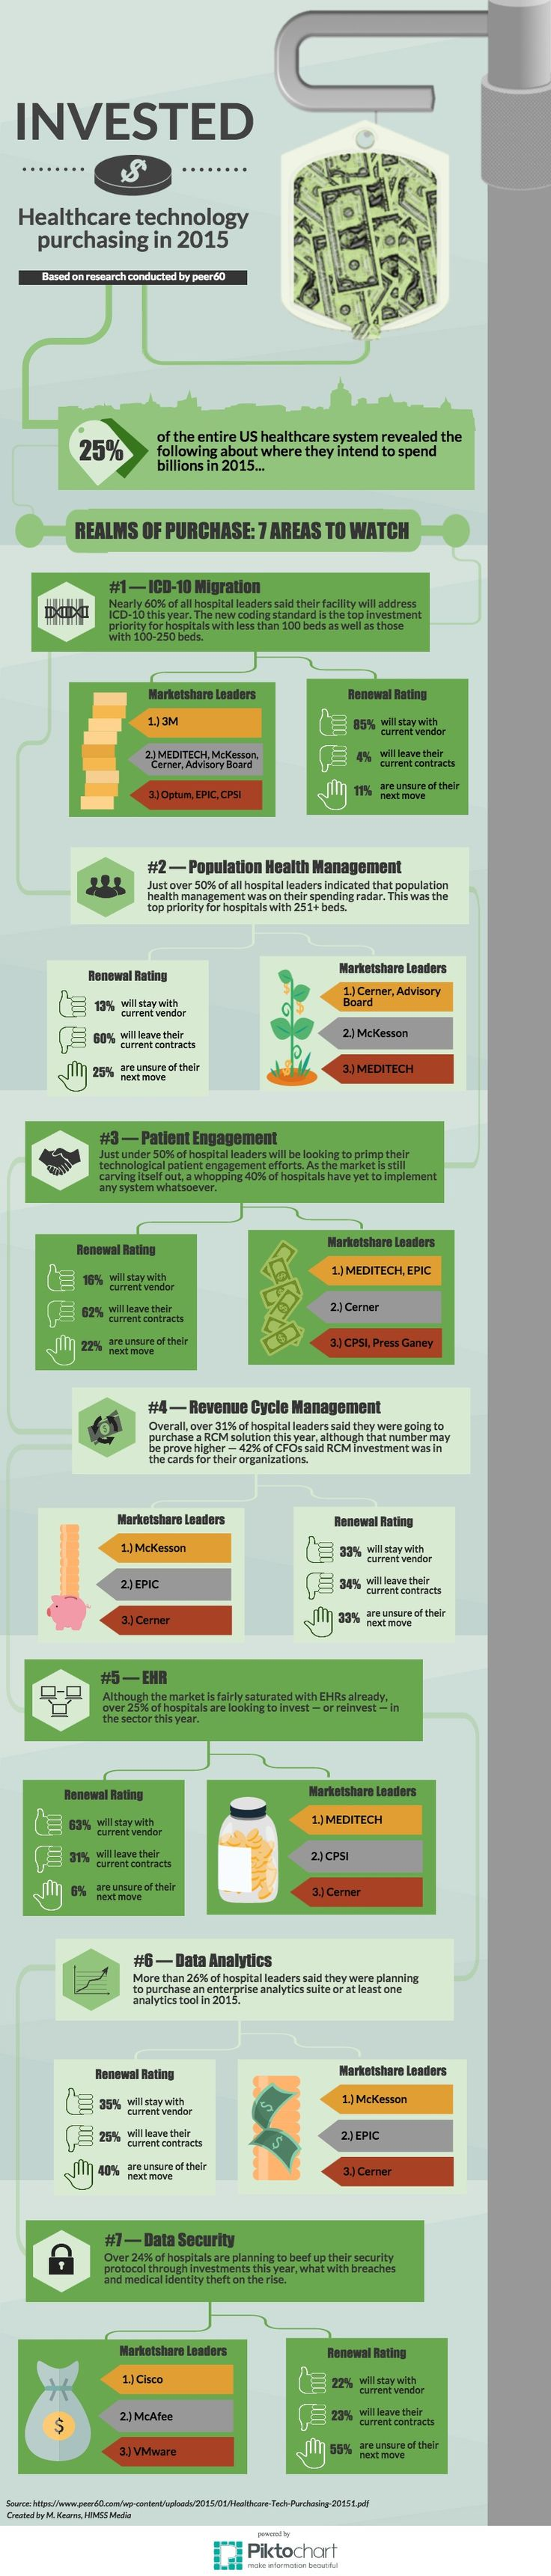 Infographic: 2015 health IT purchasing trends (ICD-10, Population Health Management, Patient Engagement, RCM, Data Analytics, Data Security) (HeathcareItNews.com)